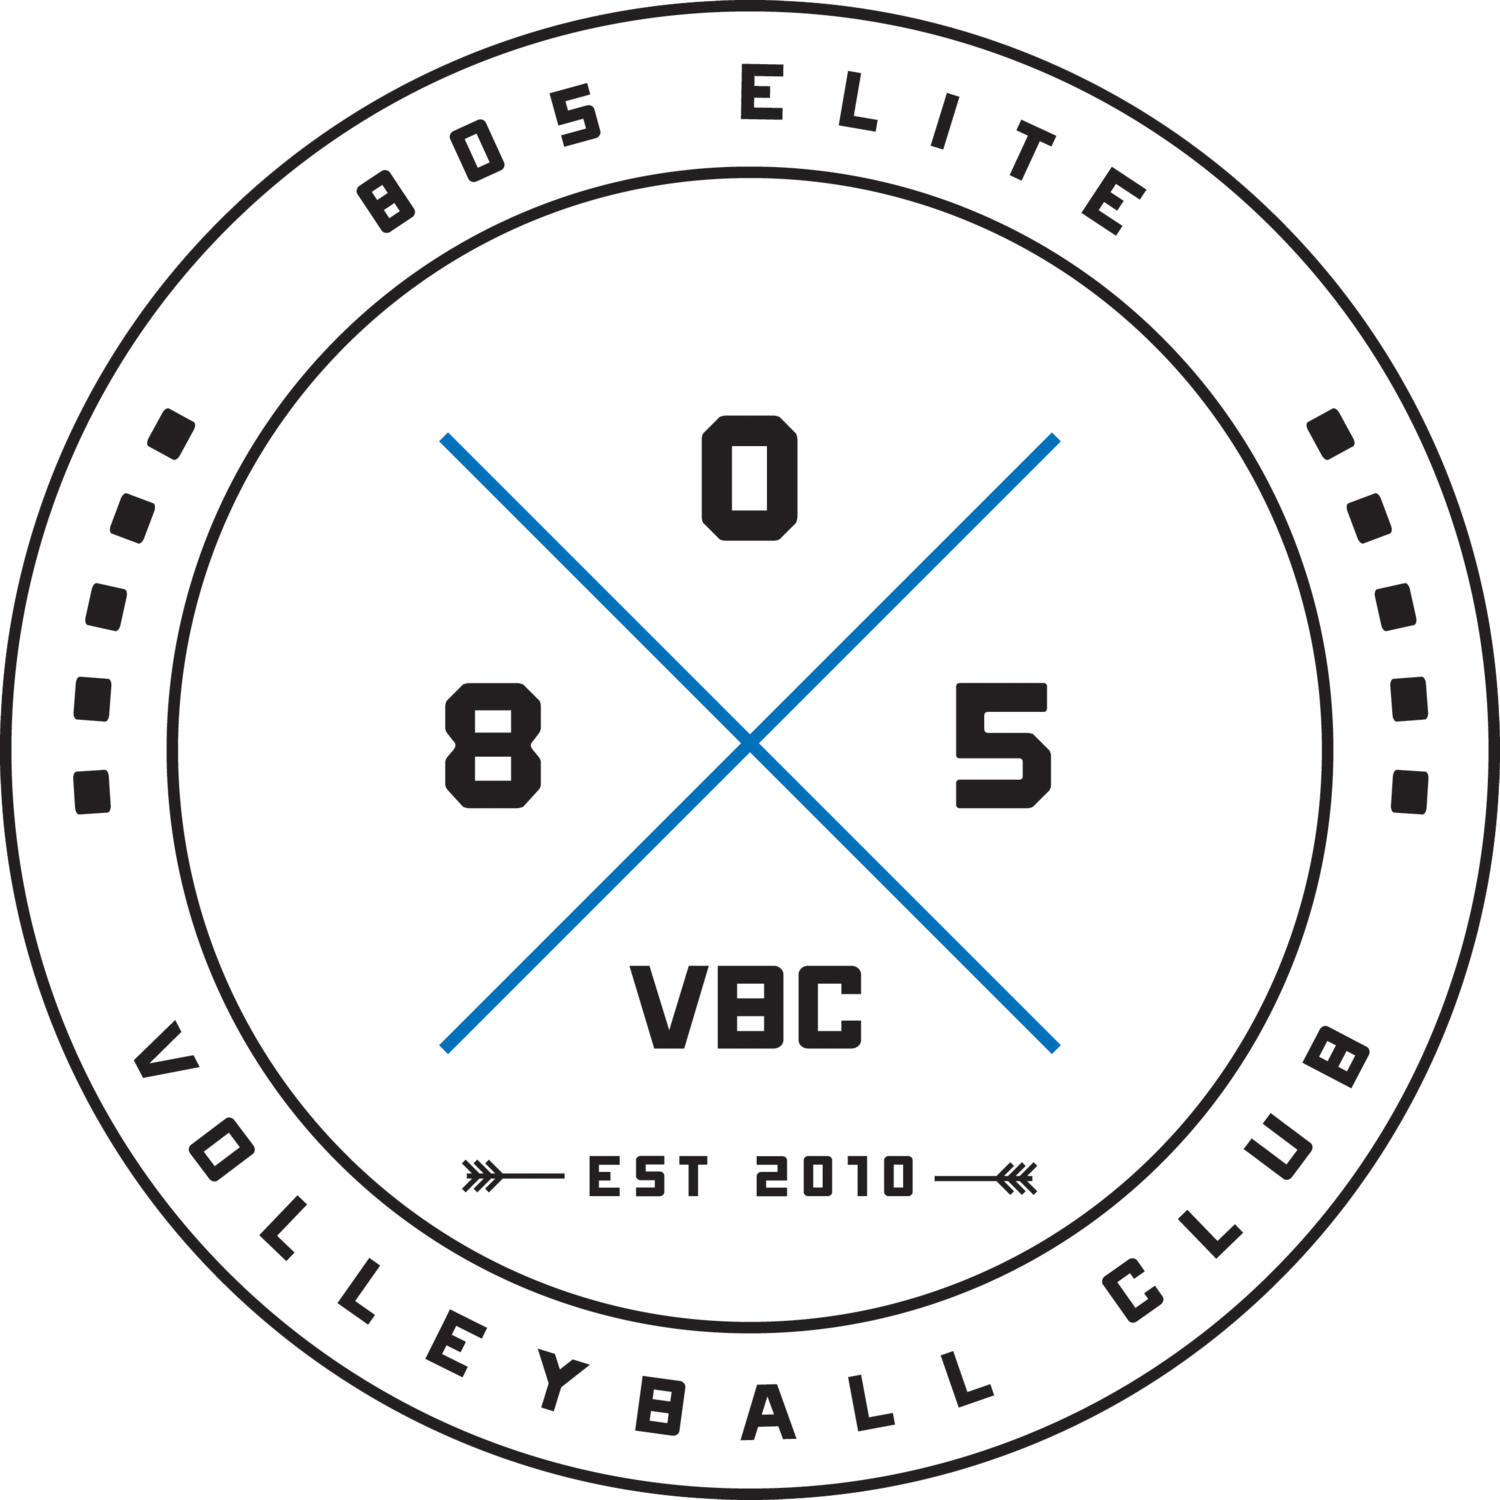 805 ELITE VOLLEYBALL CLUB